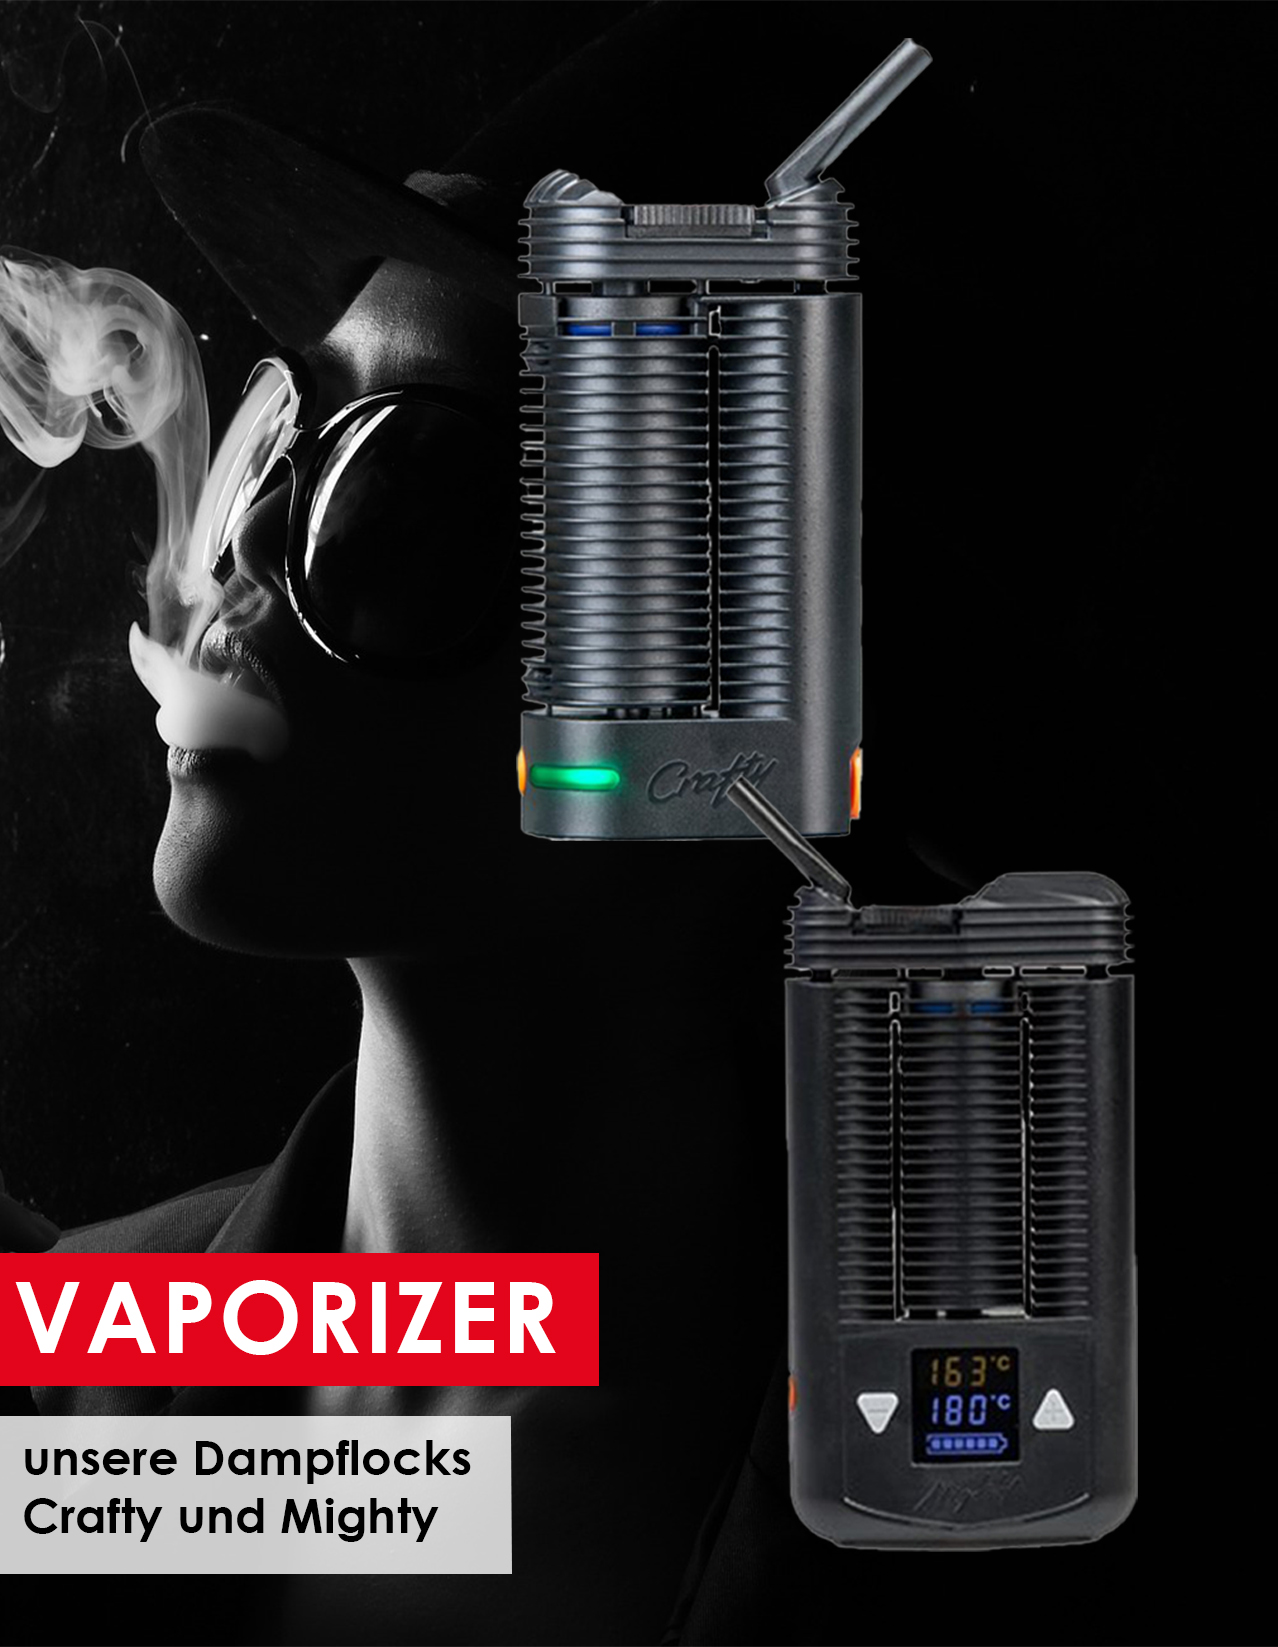 Vaporizer-Mighty-and-Crafty-von-Storz-und-Bickel-die-wohl-beste-Alternative-zu-Arizer-Smono-DaVinci